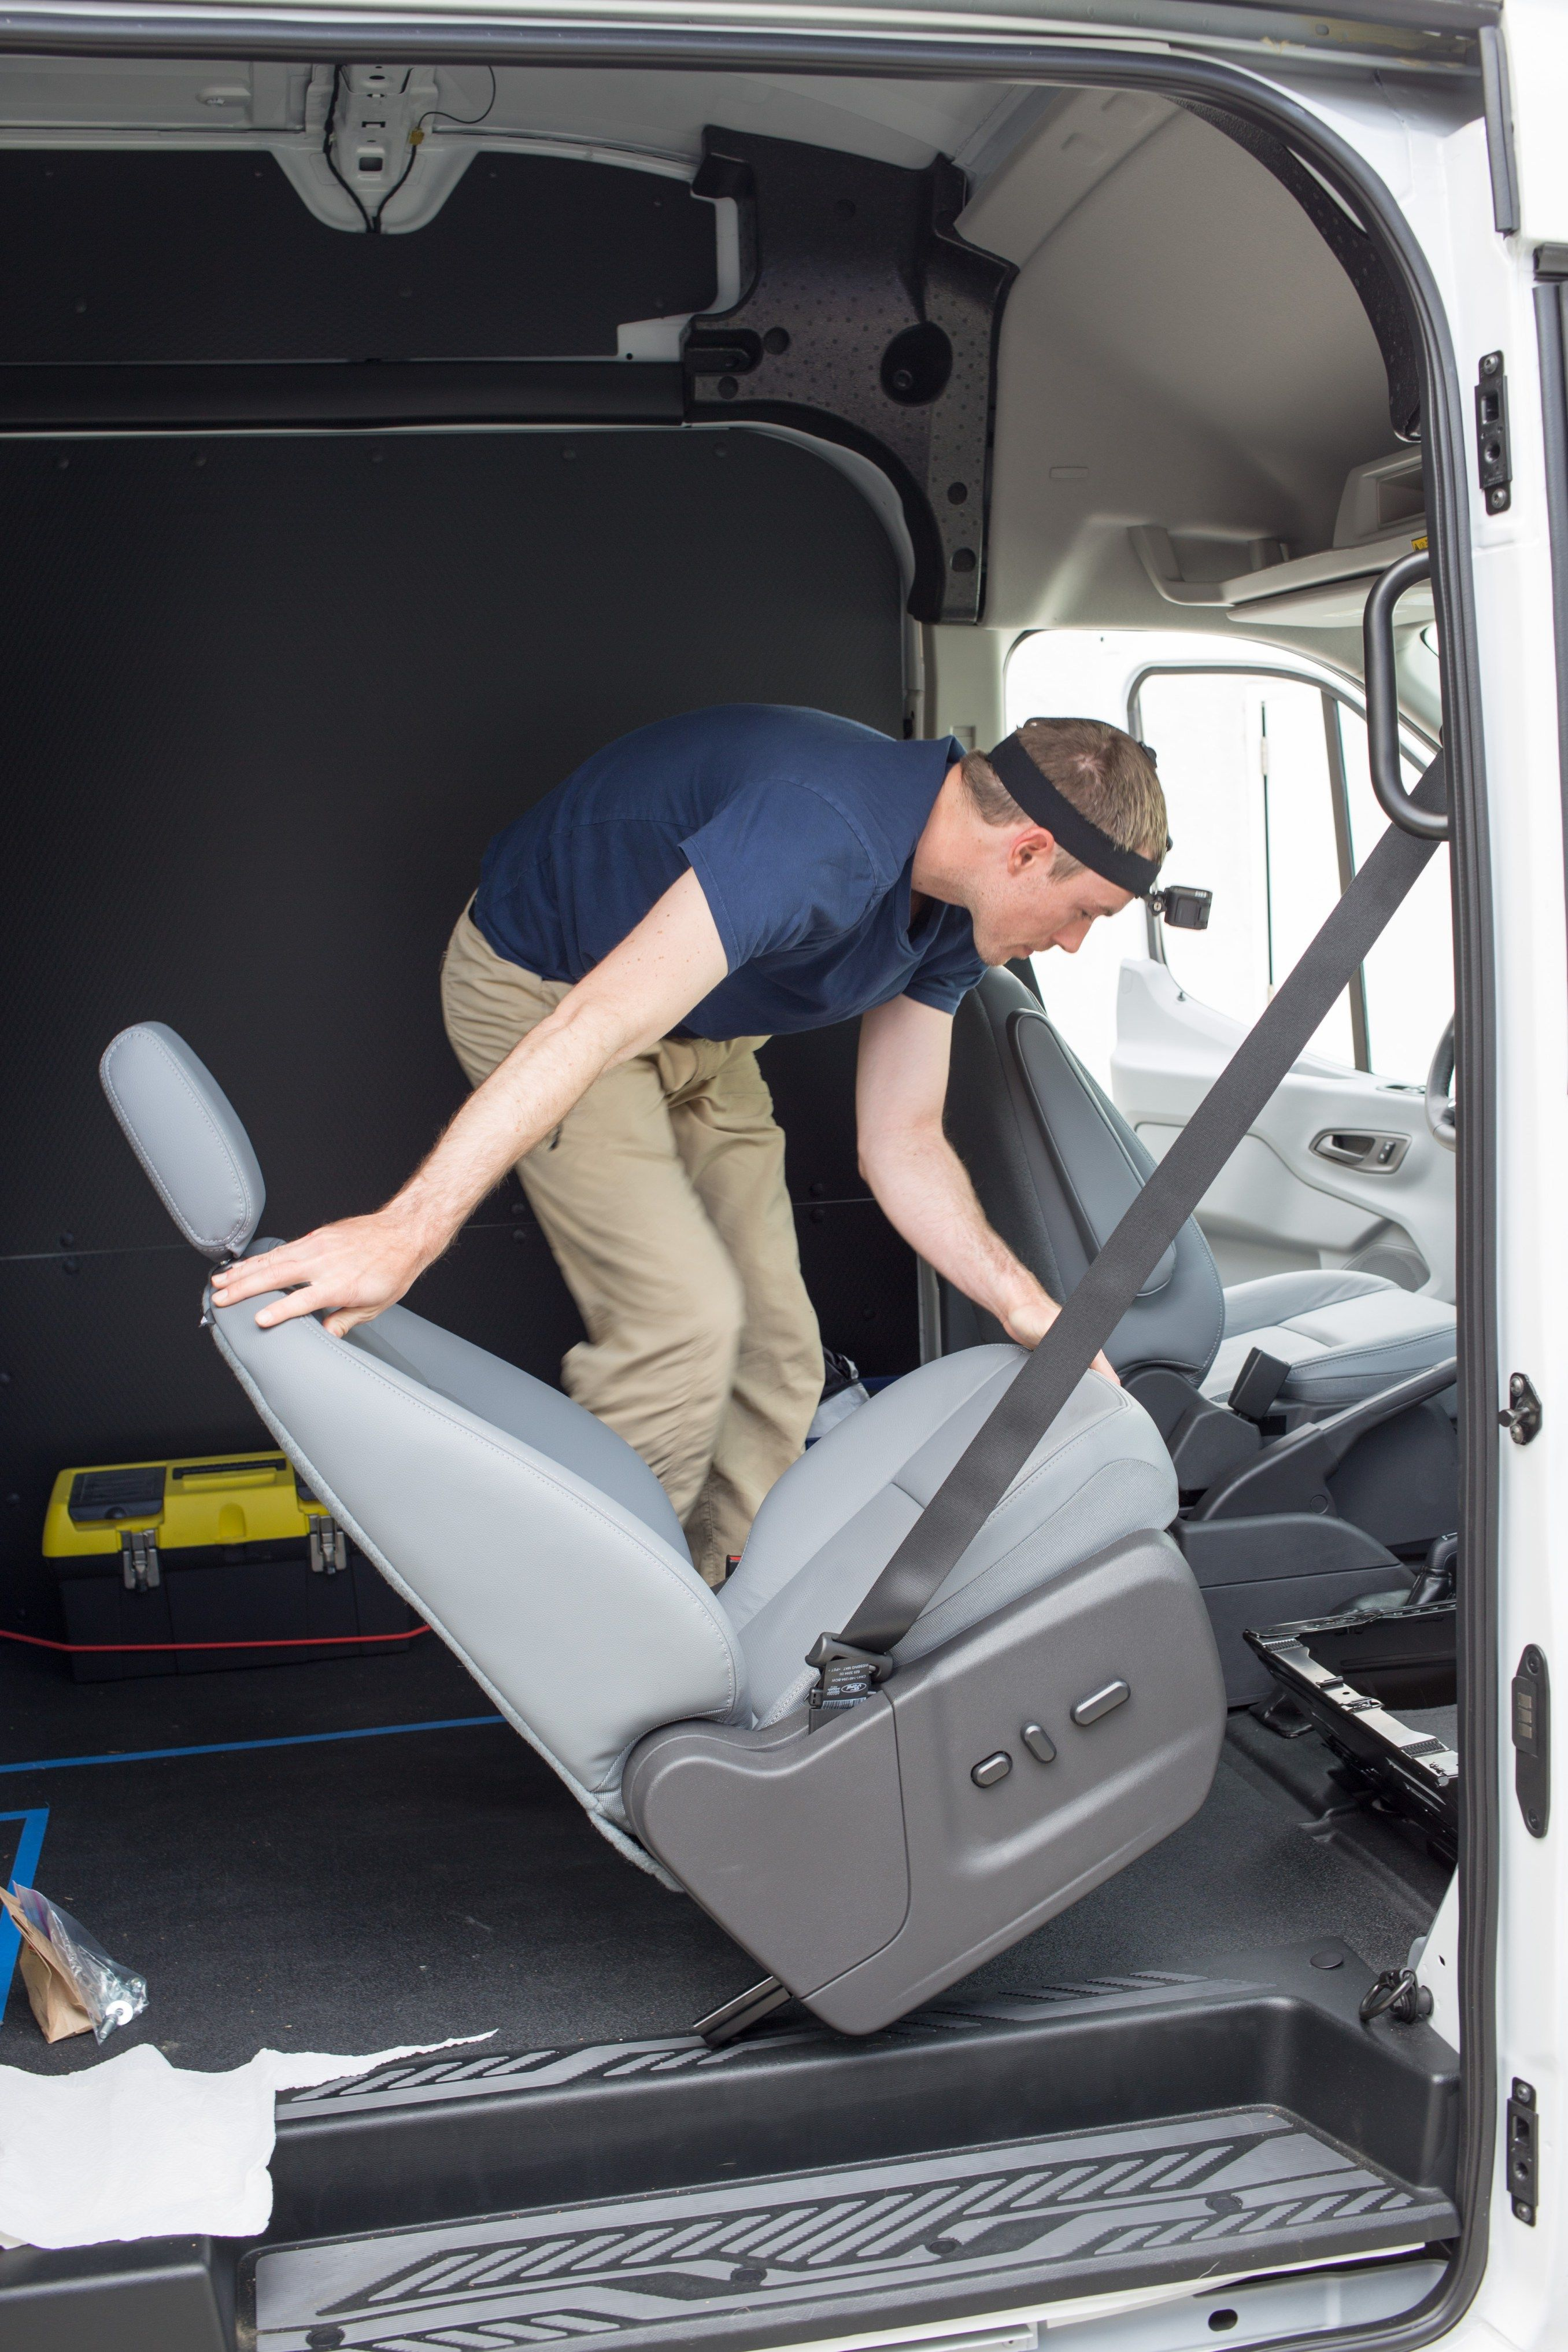 How To Install A Swivel Seat Adapter Swivel Seating Ford Transit Camper Furniture